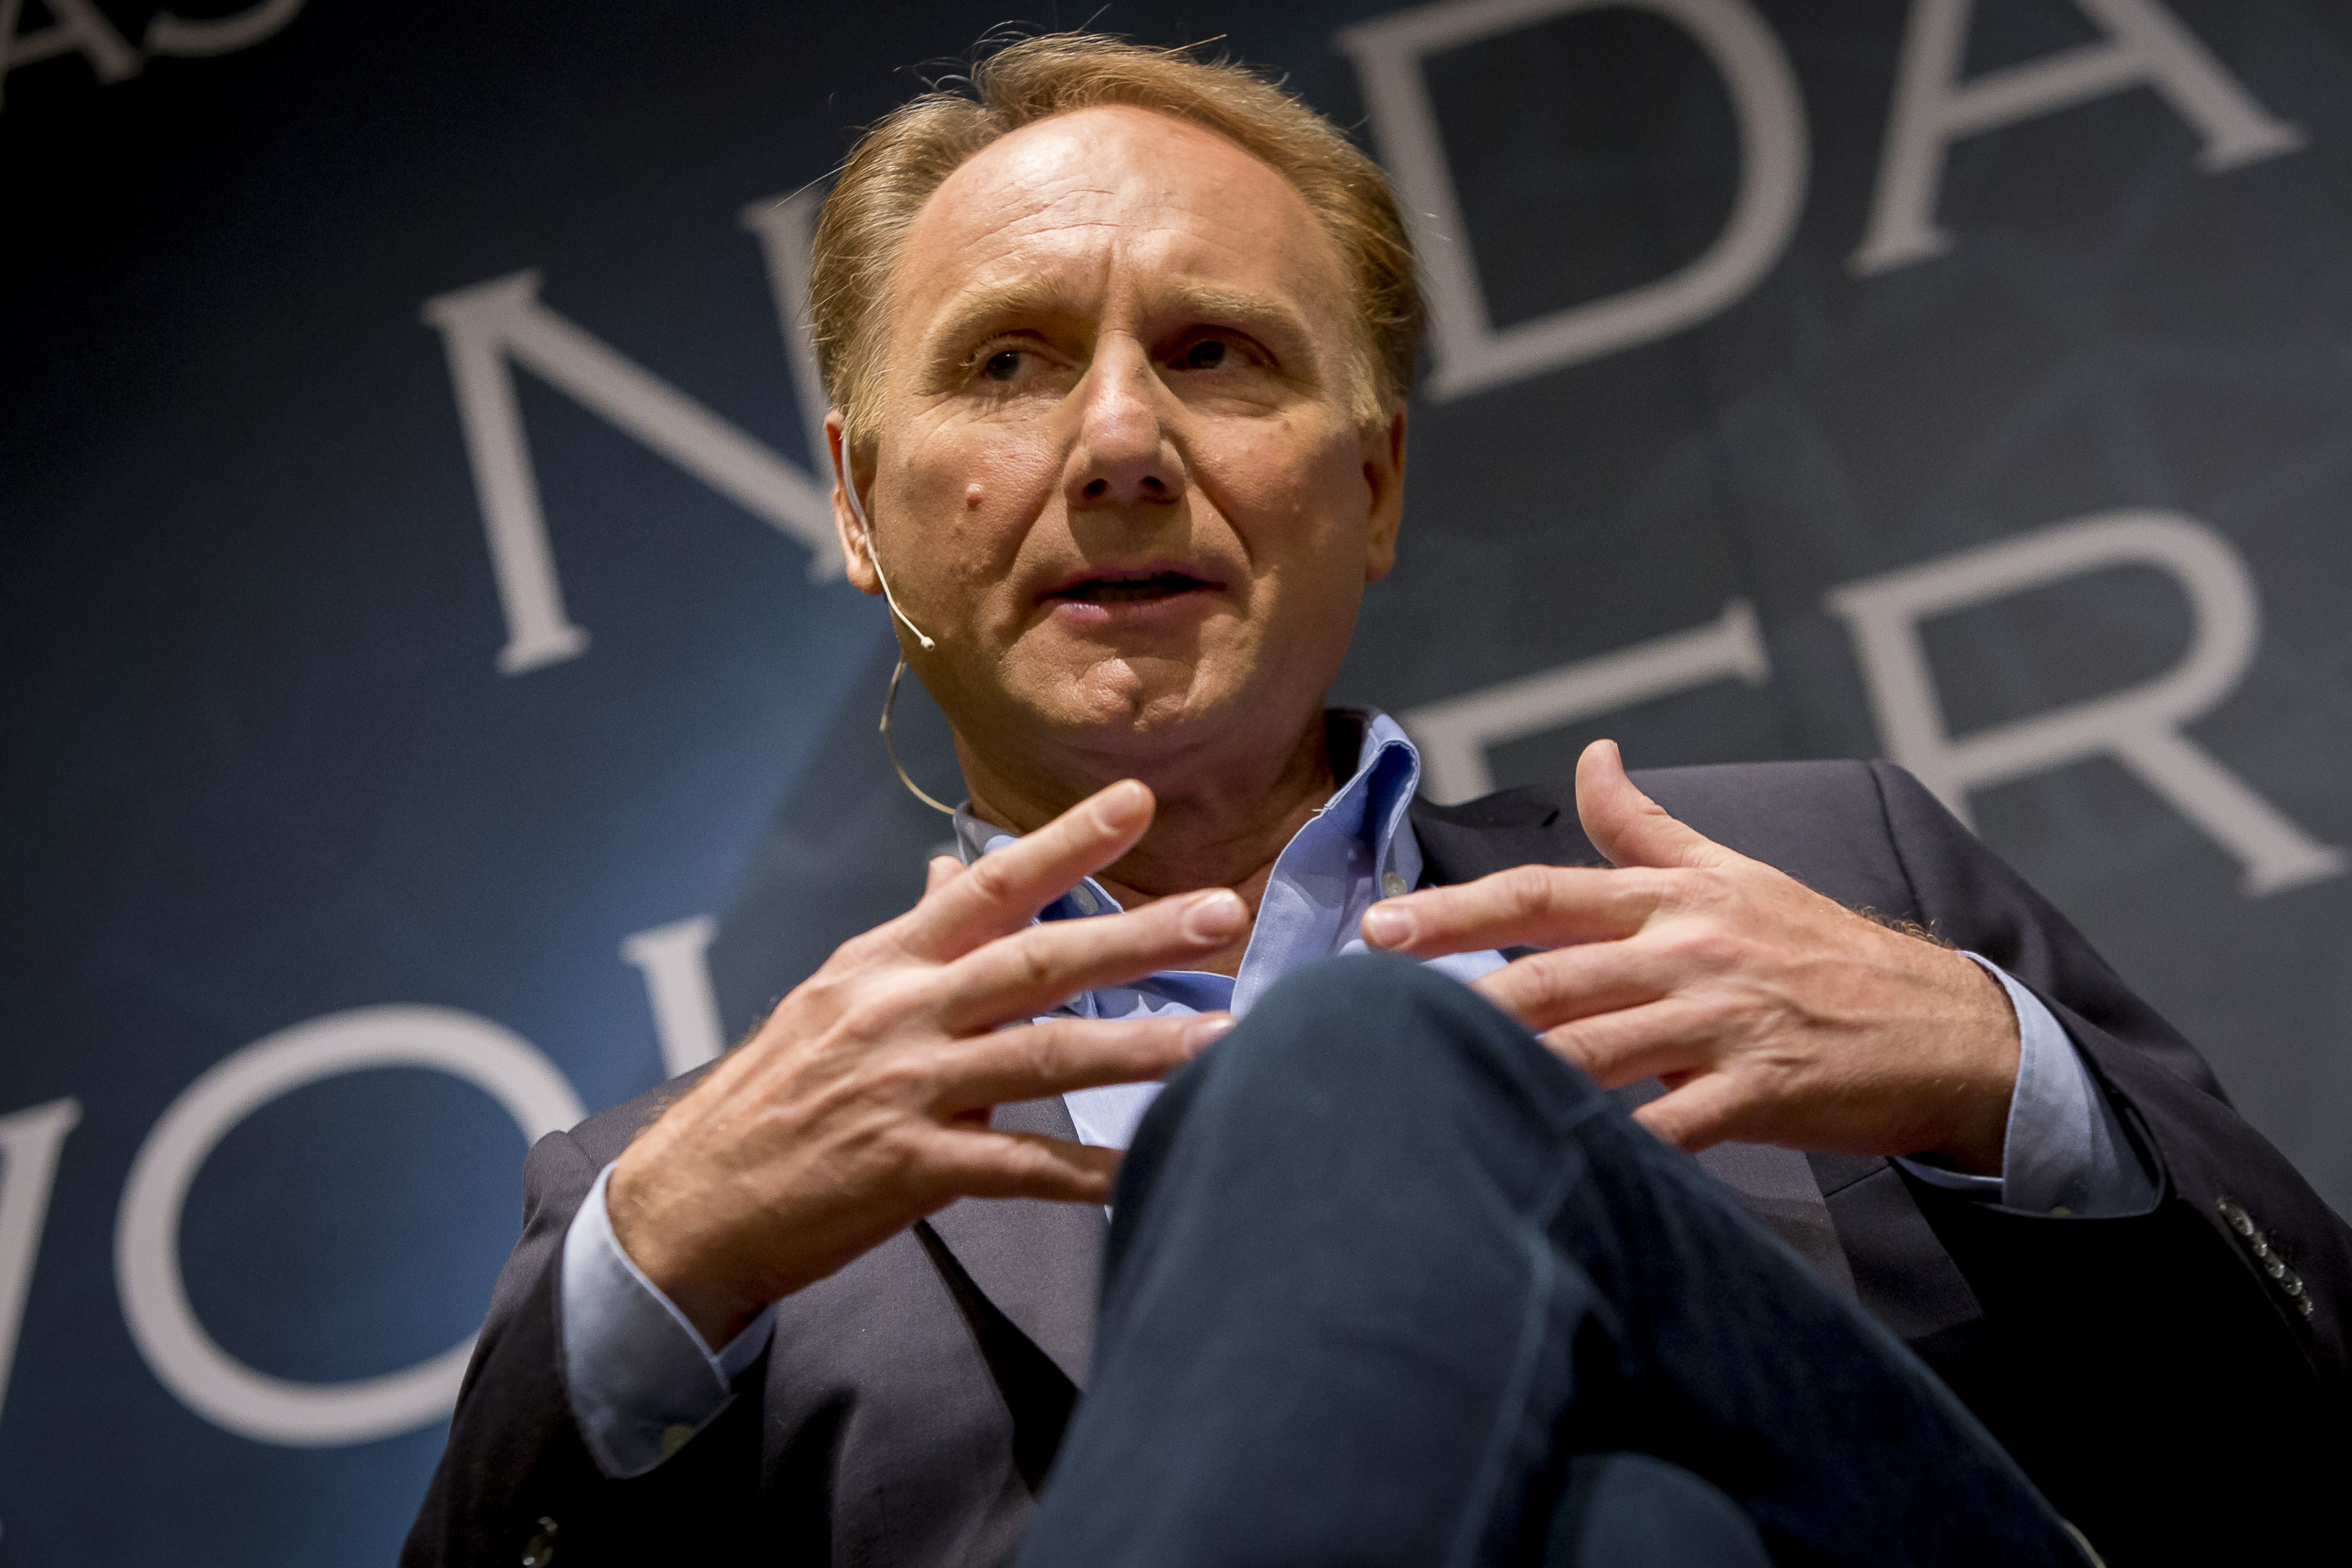 Dan Brown Writing Picture Book for Kids